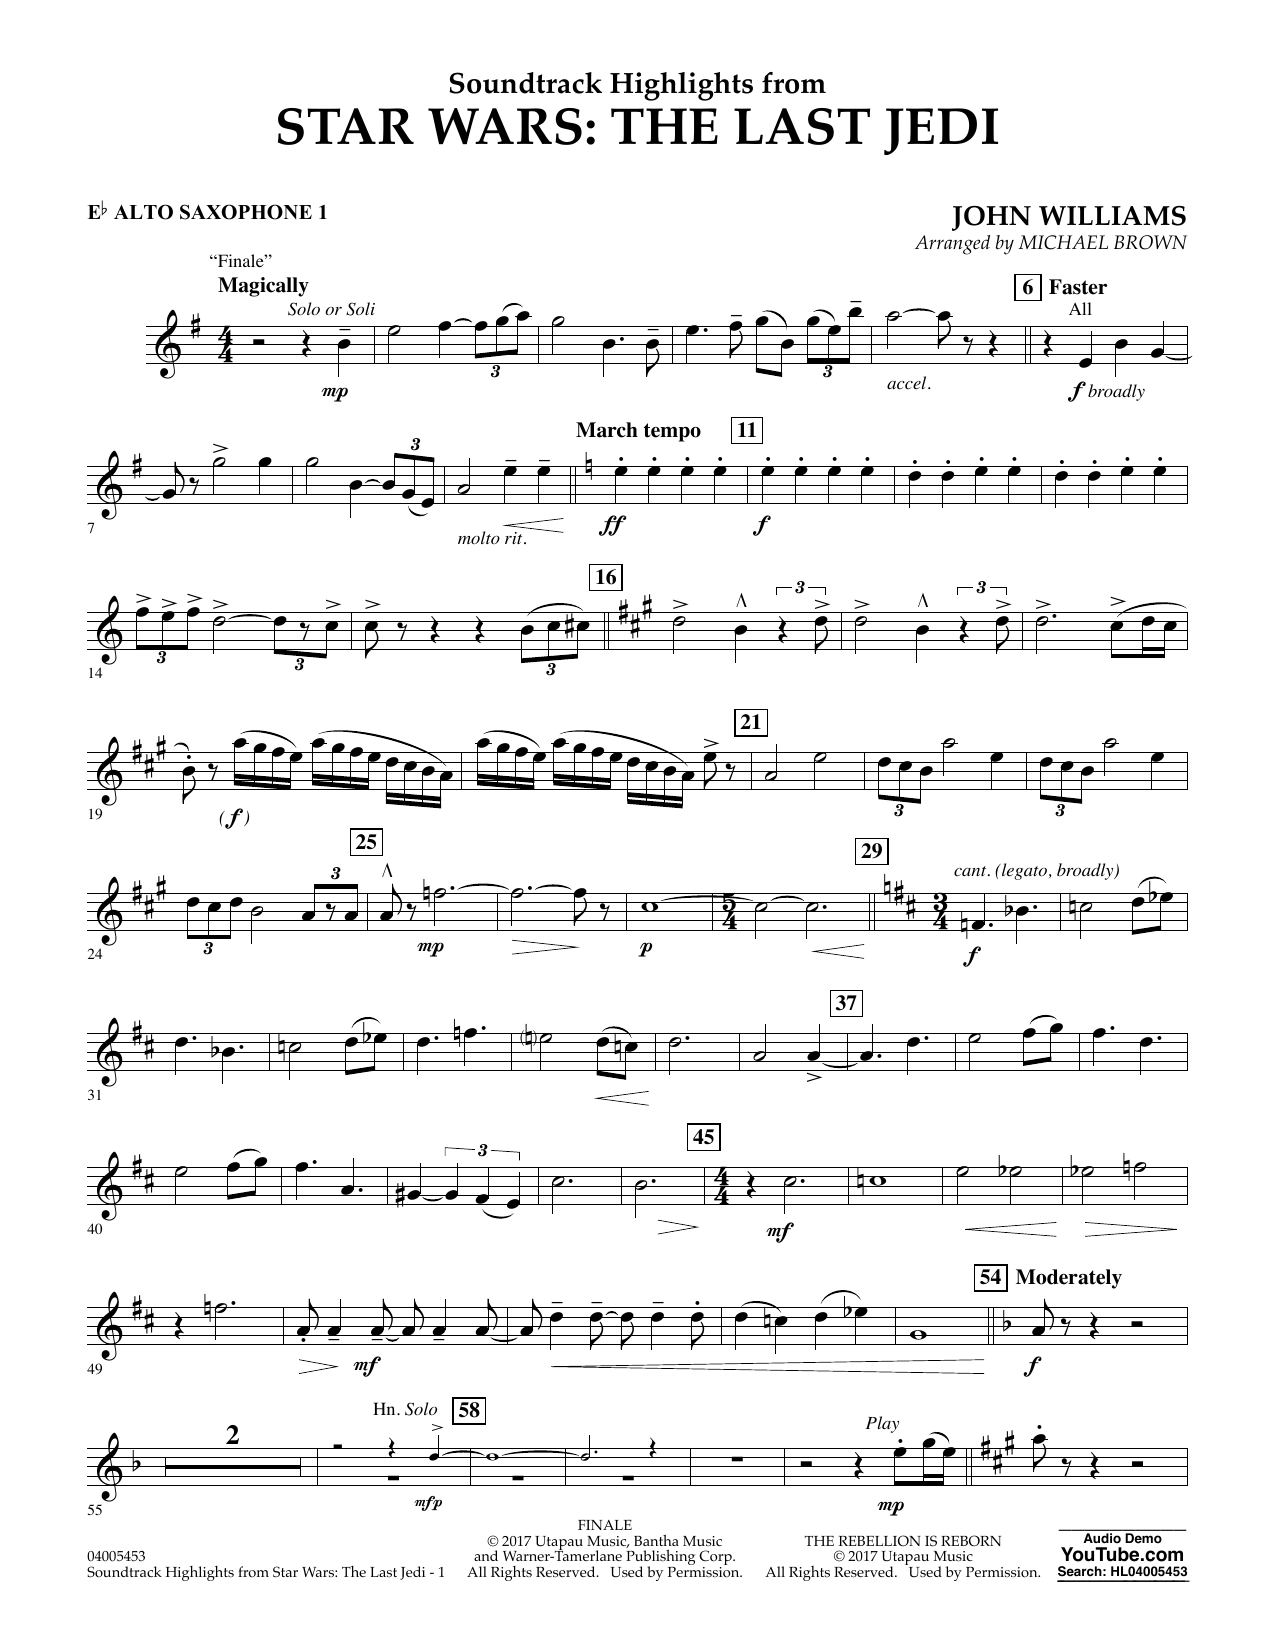 Michael Brown Soundtrack Highlights from Star Wars: The Last Jedi - Eb Alto Saxophone 1 sheet music notes and chords. Download Printable PDF.